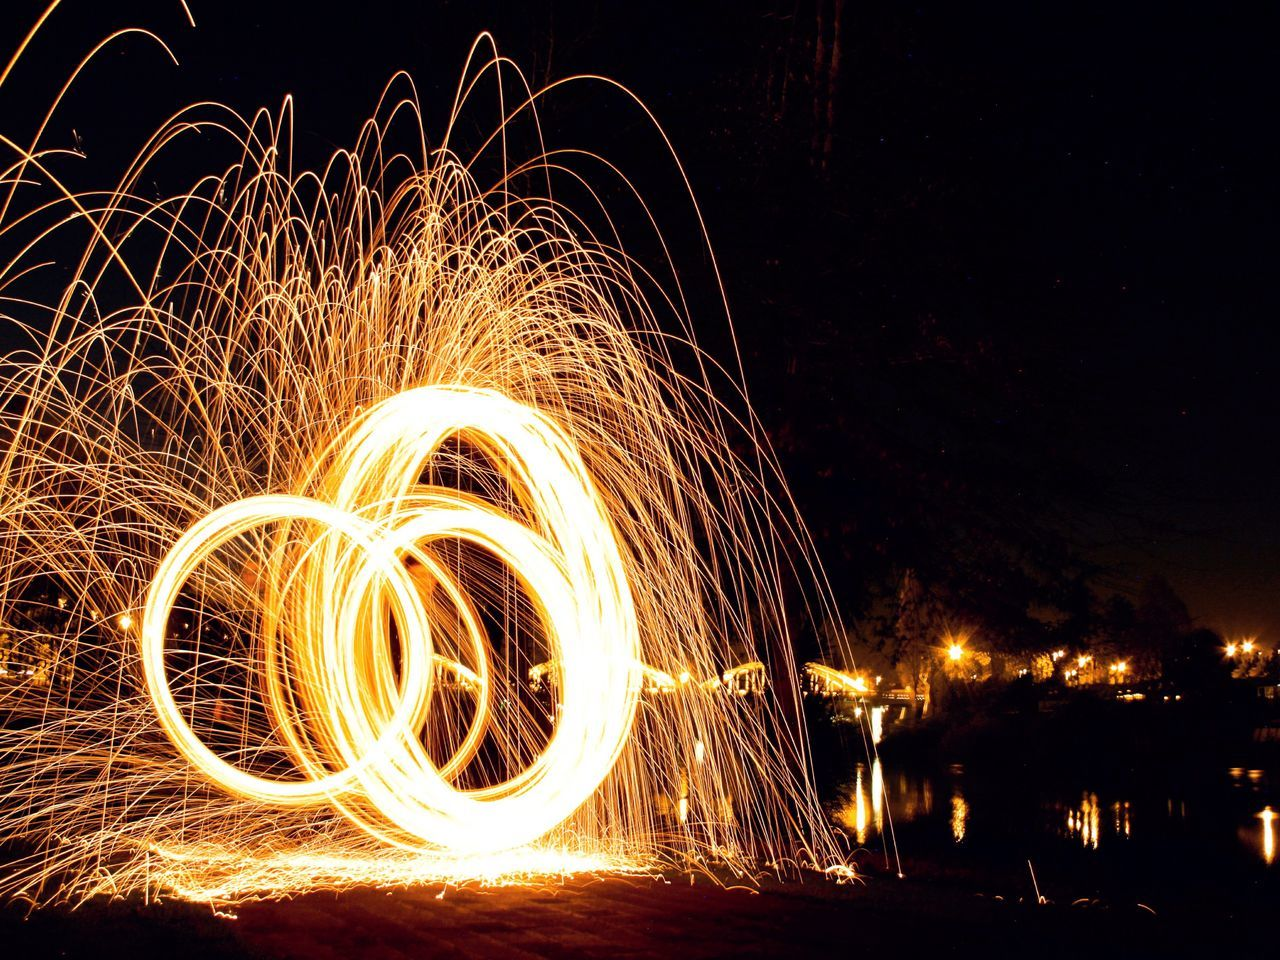 Steelwool Steelwoolphotography 43 Golden Moments